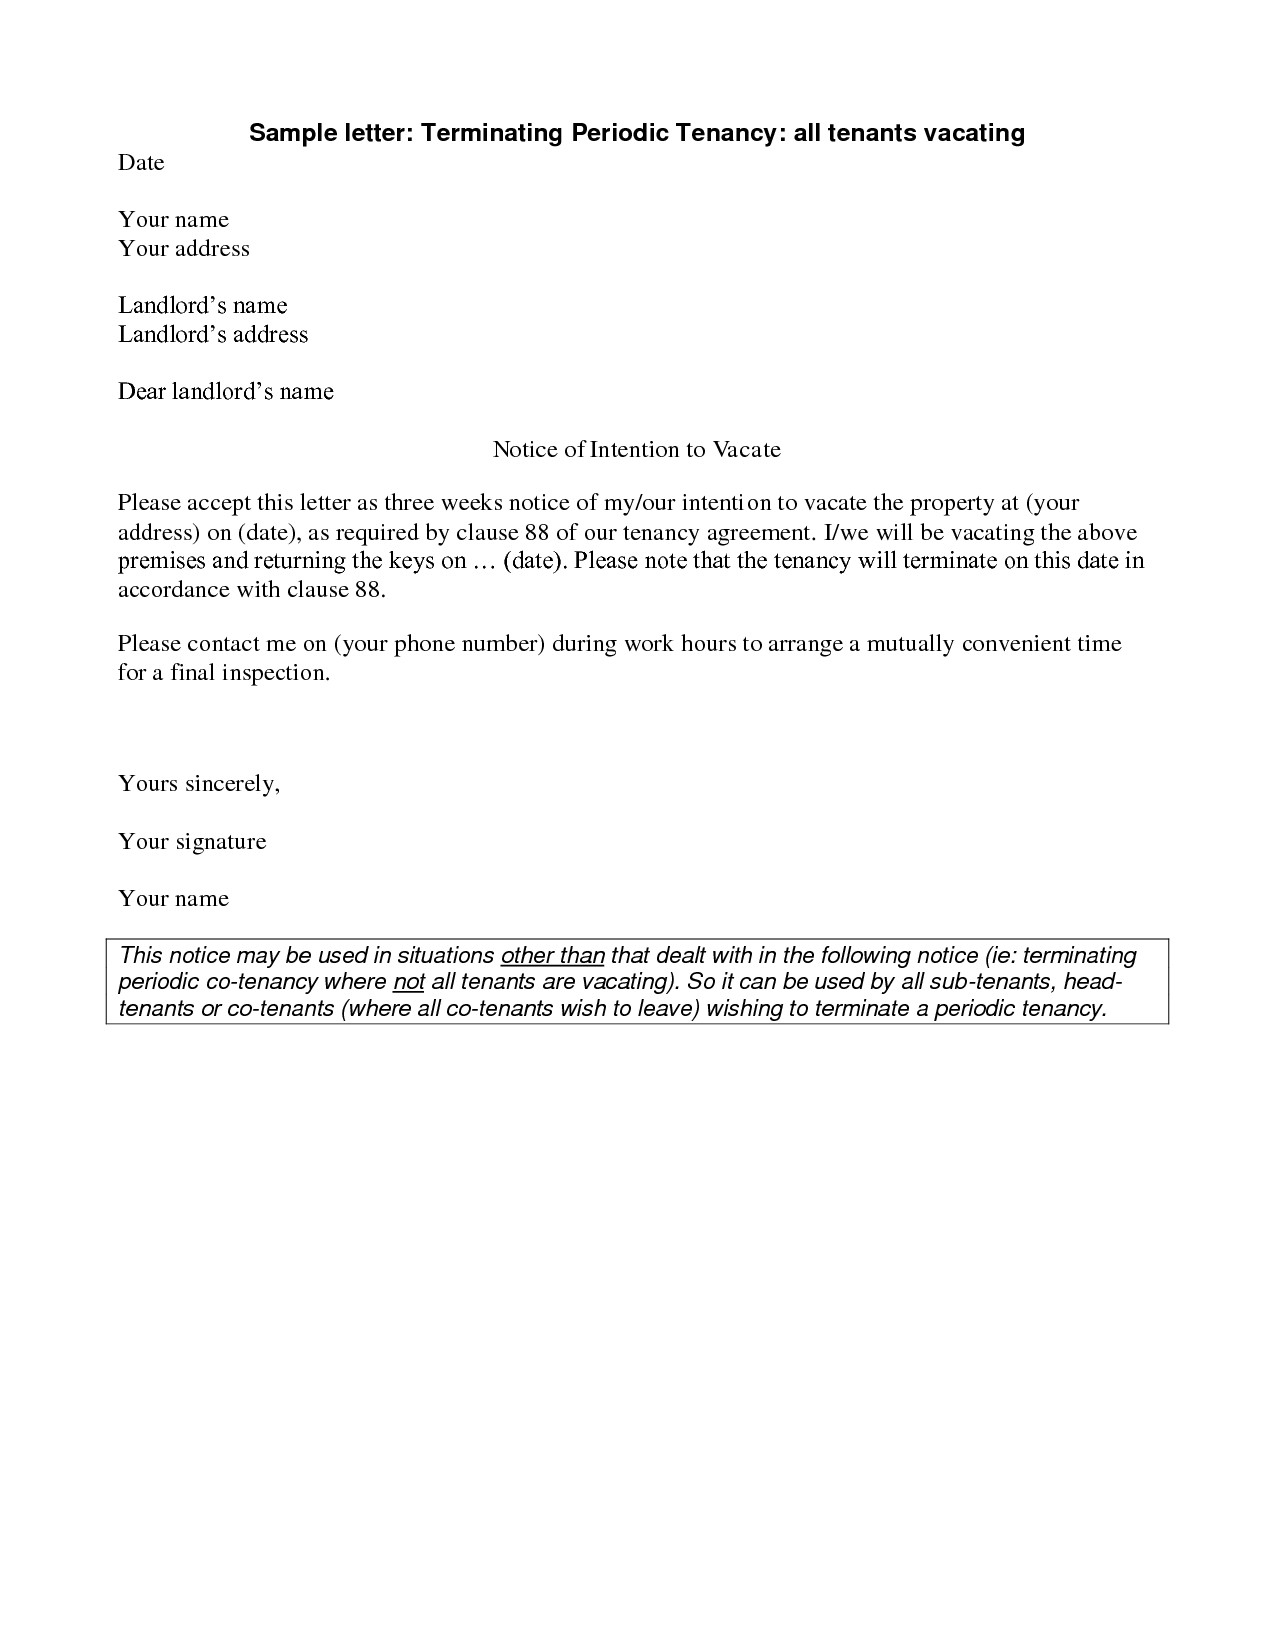 Landlord Property Inspection Letter Template - Landlord End Tenancy Letter Template